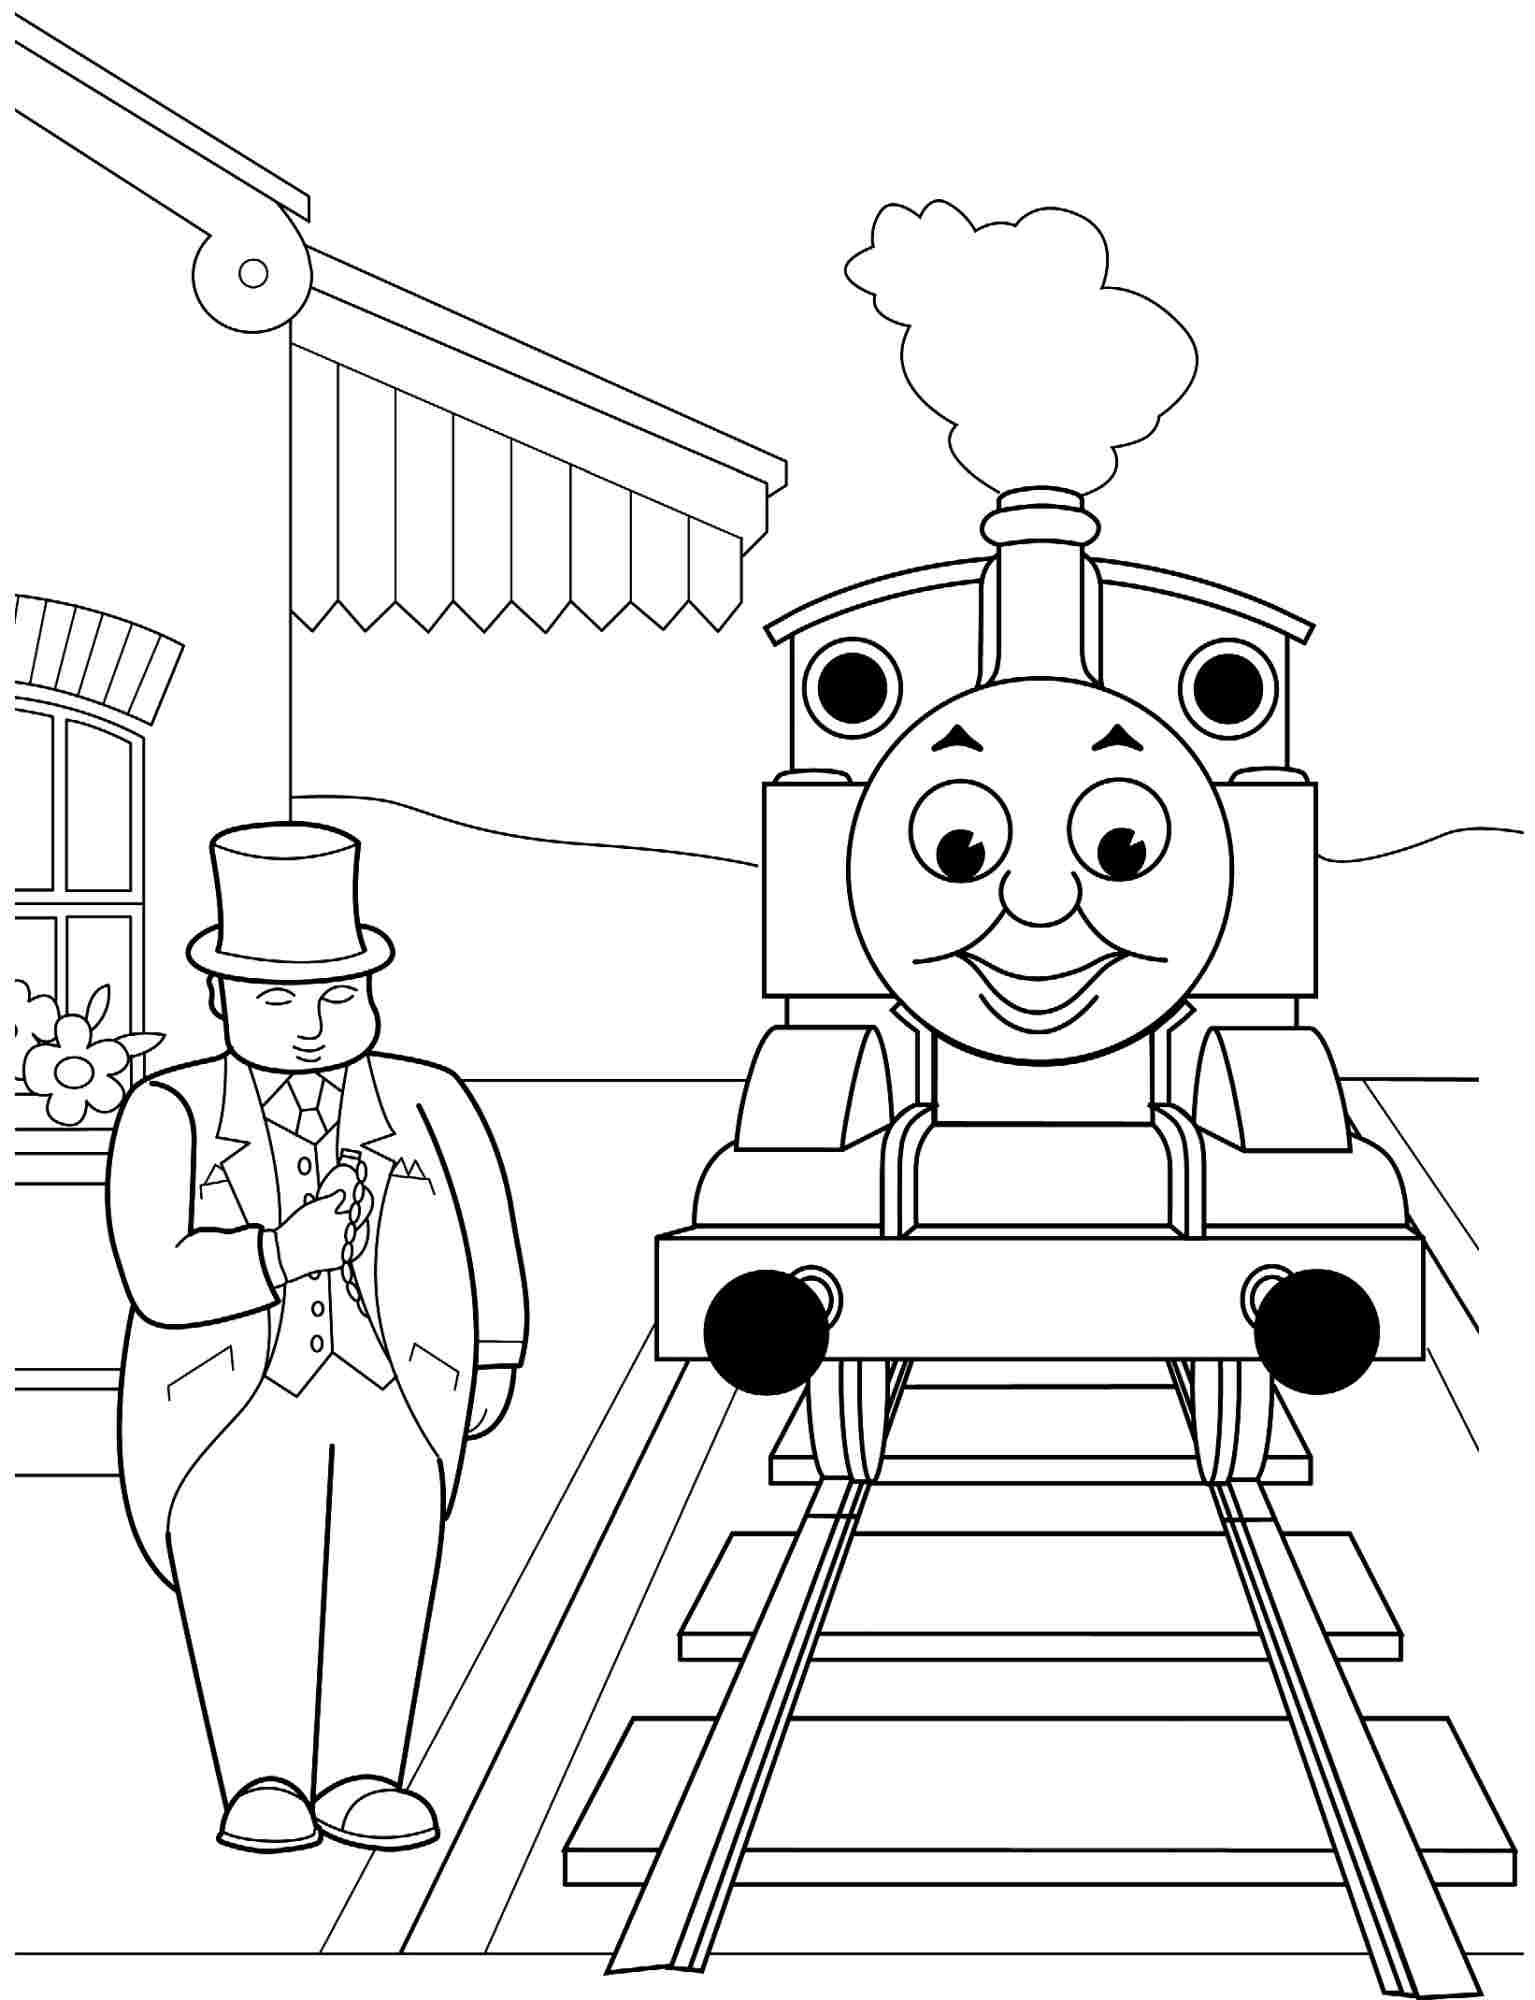 Thomas The Train Coloring Pages At Getcolorings